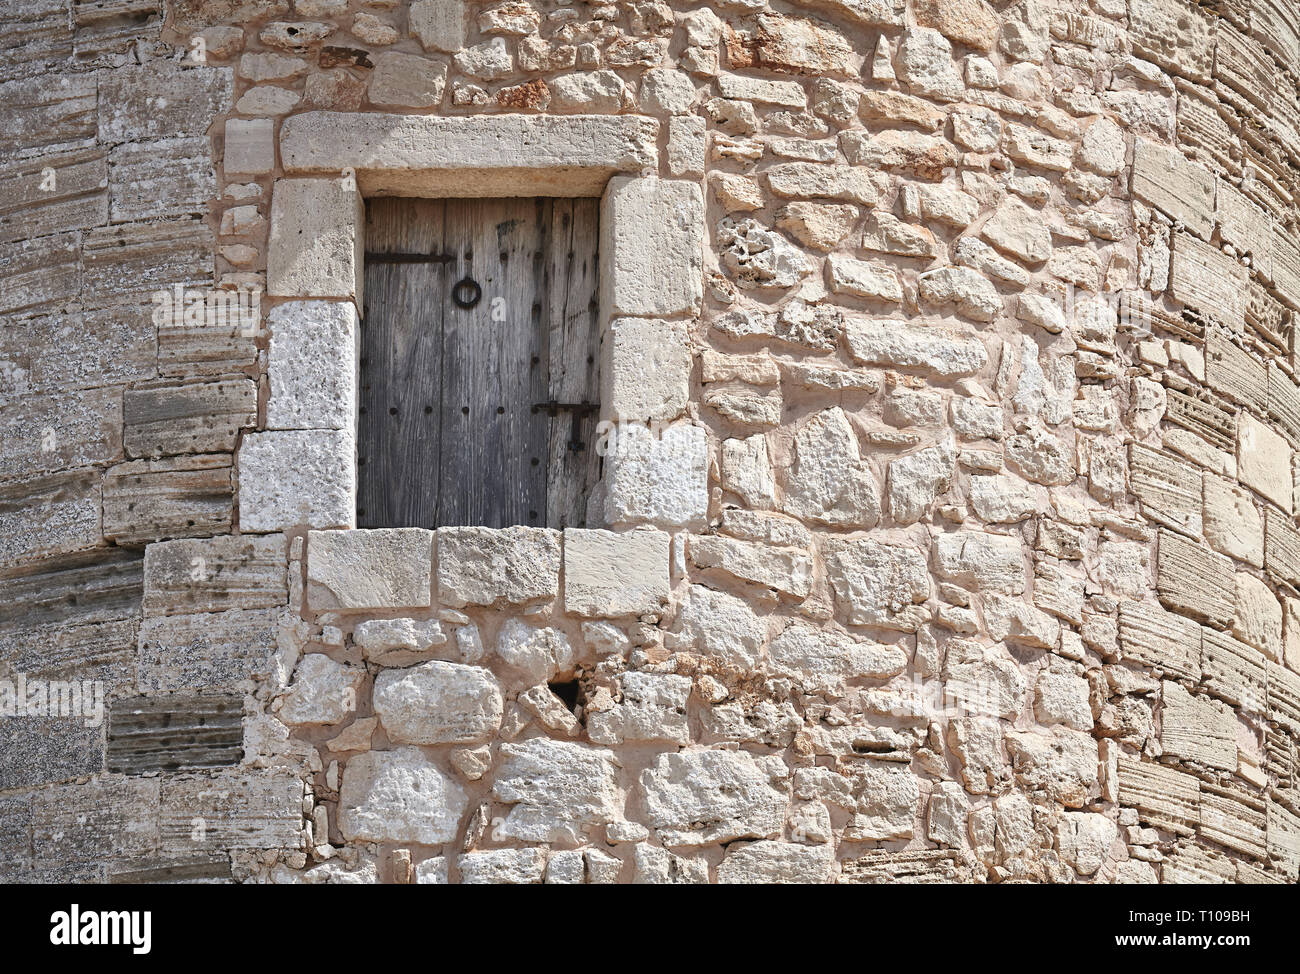 Wooden window in a medieval stone tower. - Stock Image